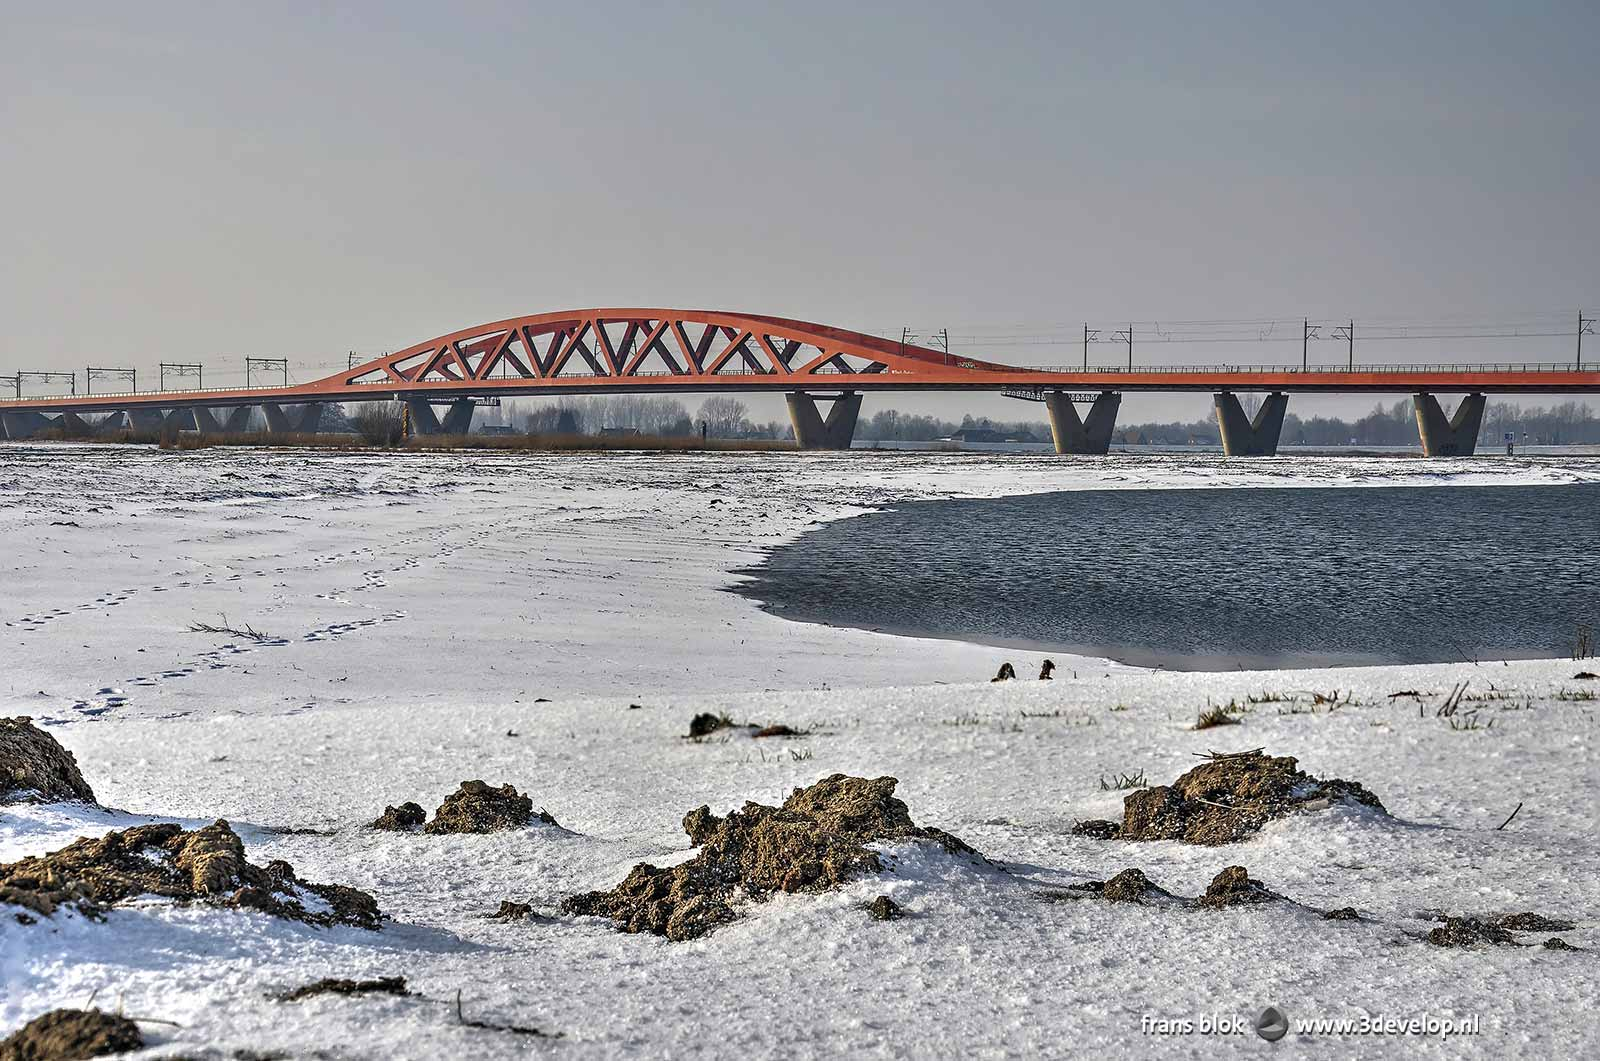 Photo of the Hanzeboog railway bridge across the river IJssel near Zwolle, seen from the snow covered landscape of the floodplains